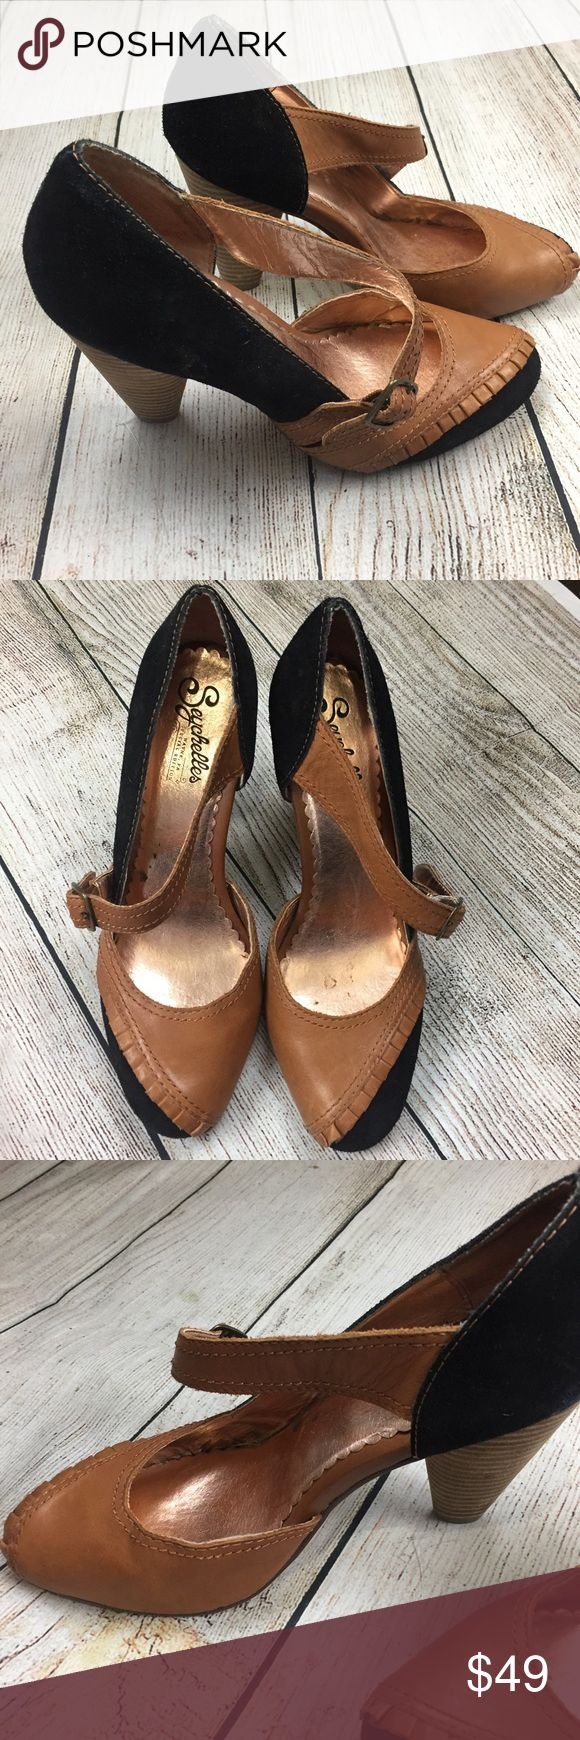 Anthropologie Seychelles two toned heels size 8 Anthropologie Seychelles special edition black and brown heels size 8...worn once or twice sticker still on bottom ...black suede with a camel color leather Ruffle and strap...absolutely vintage looking gorgeous! Anthropologie Shoes Heels